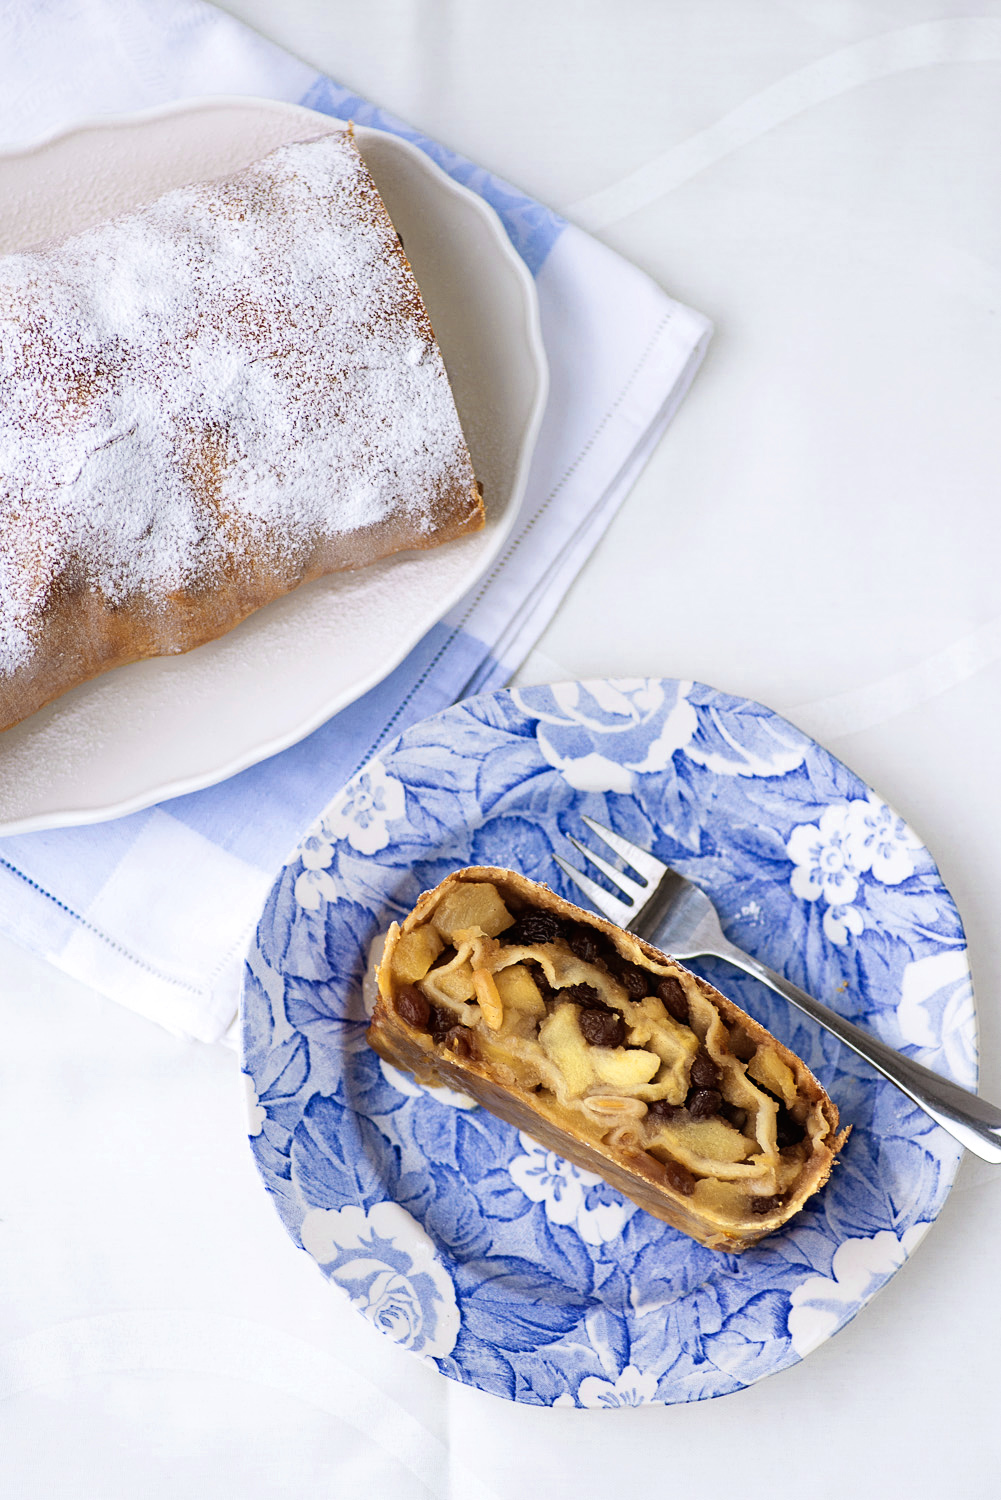 Strucolo de Pomi, Apple Strudel Recipe